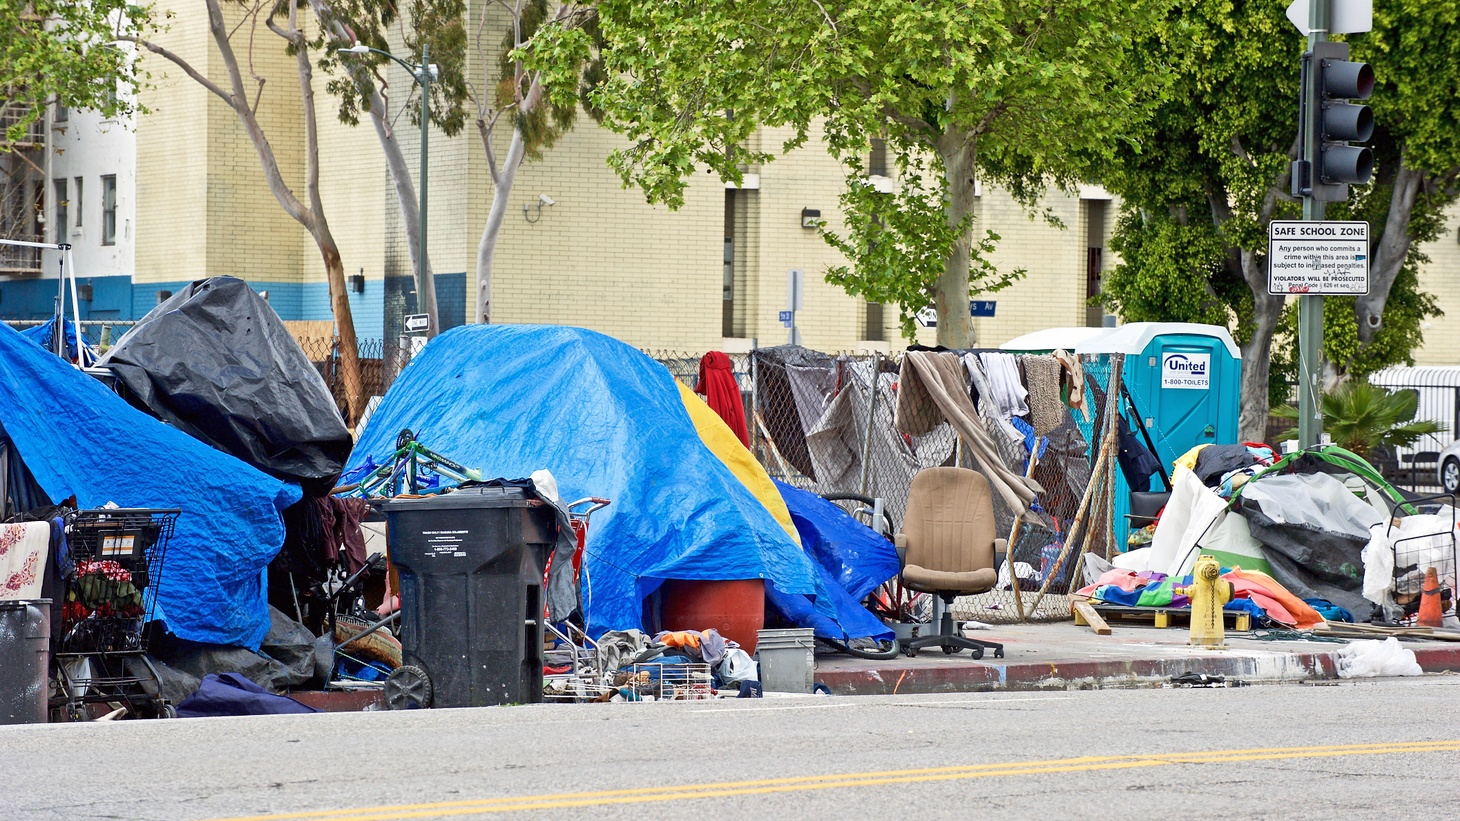 """Los Angeles City Council President Nury Martinez says she wants homeless encampments restricted in her district because her constituents, including immigrant, working-class families, can enjoy public spaces. """"They don't have the luxury to take their kids to Disneyland on the weekends, so they go across the street and enjoy the local parks. ... People get married at our parks. People enjoy barbecues and birthdays, and even Quinceañeras."""""""